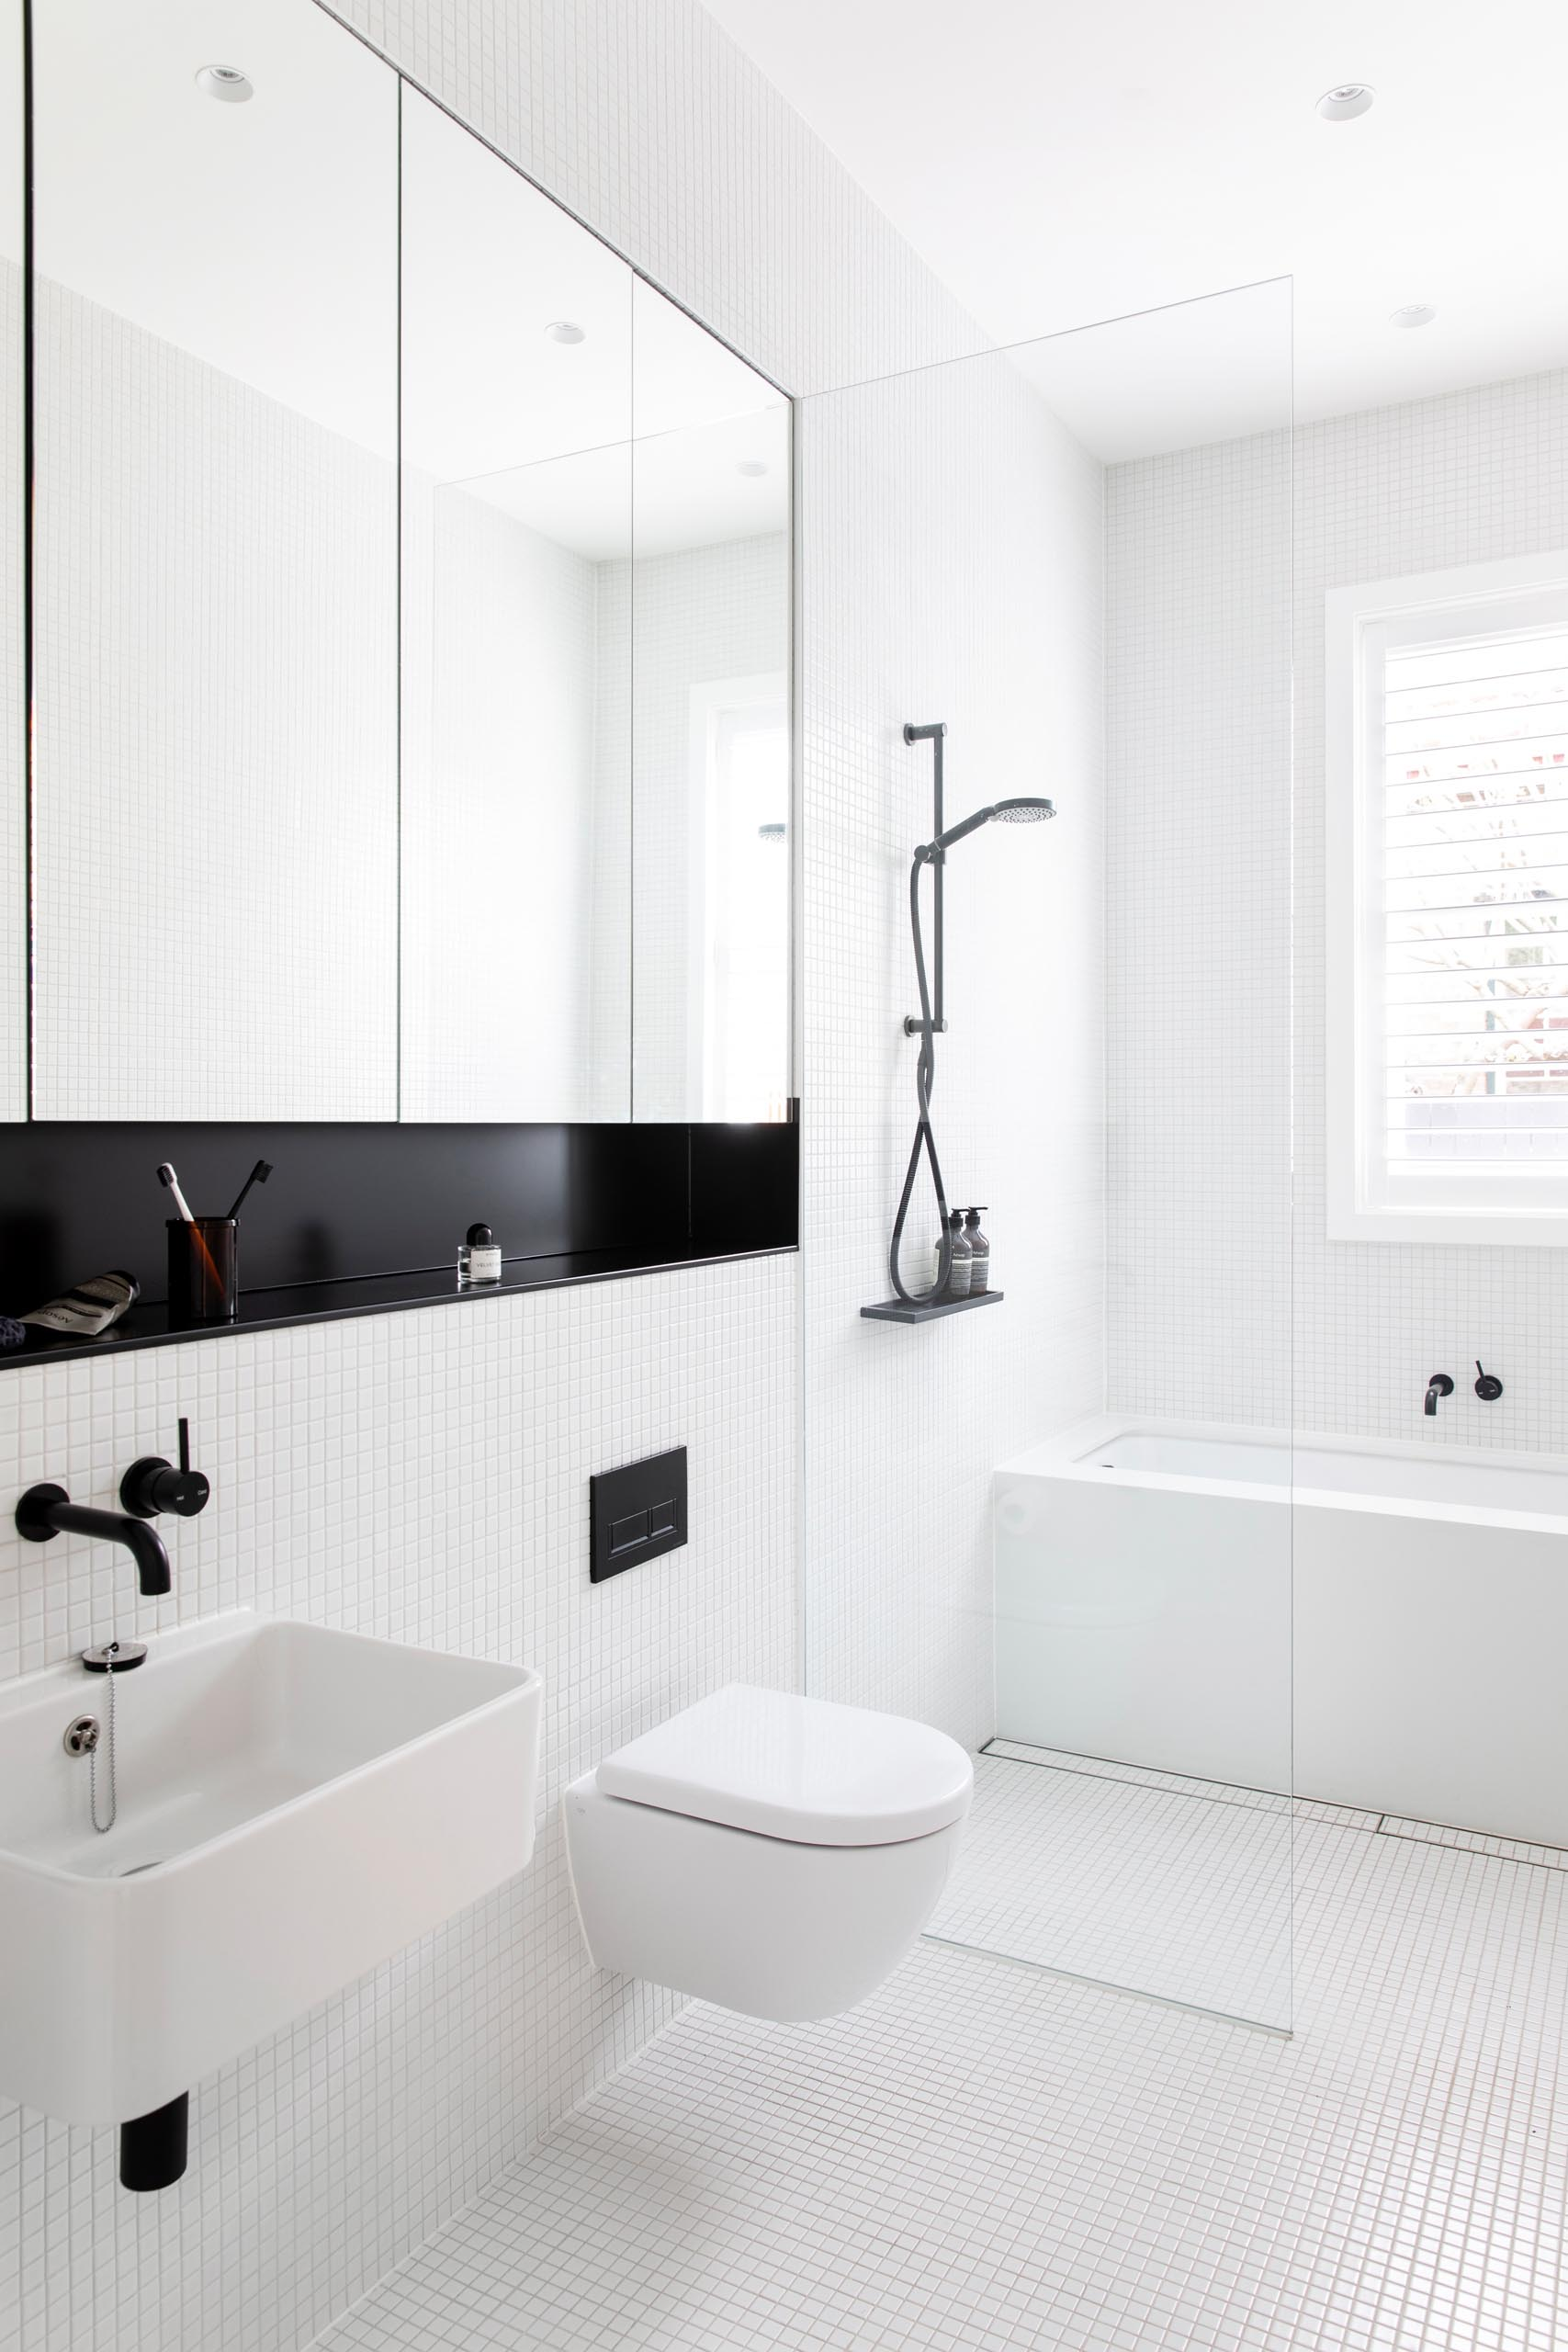 This modern bathroom has a simple white design with black accents. There's small white square tiles covering the walls and floor, a built-in bathtub, and a mirror with a recessed black shelf below. In addition to the window above the bath, there's also a skylight to add natural light to the space.